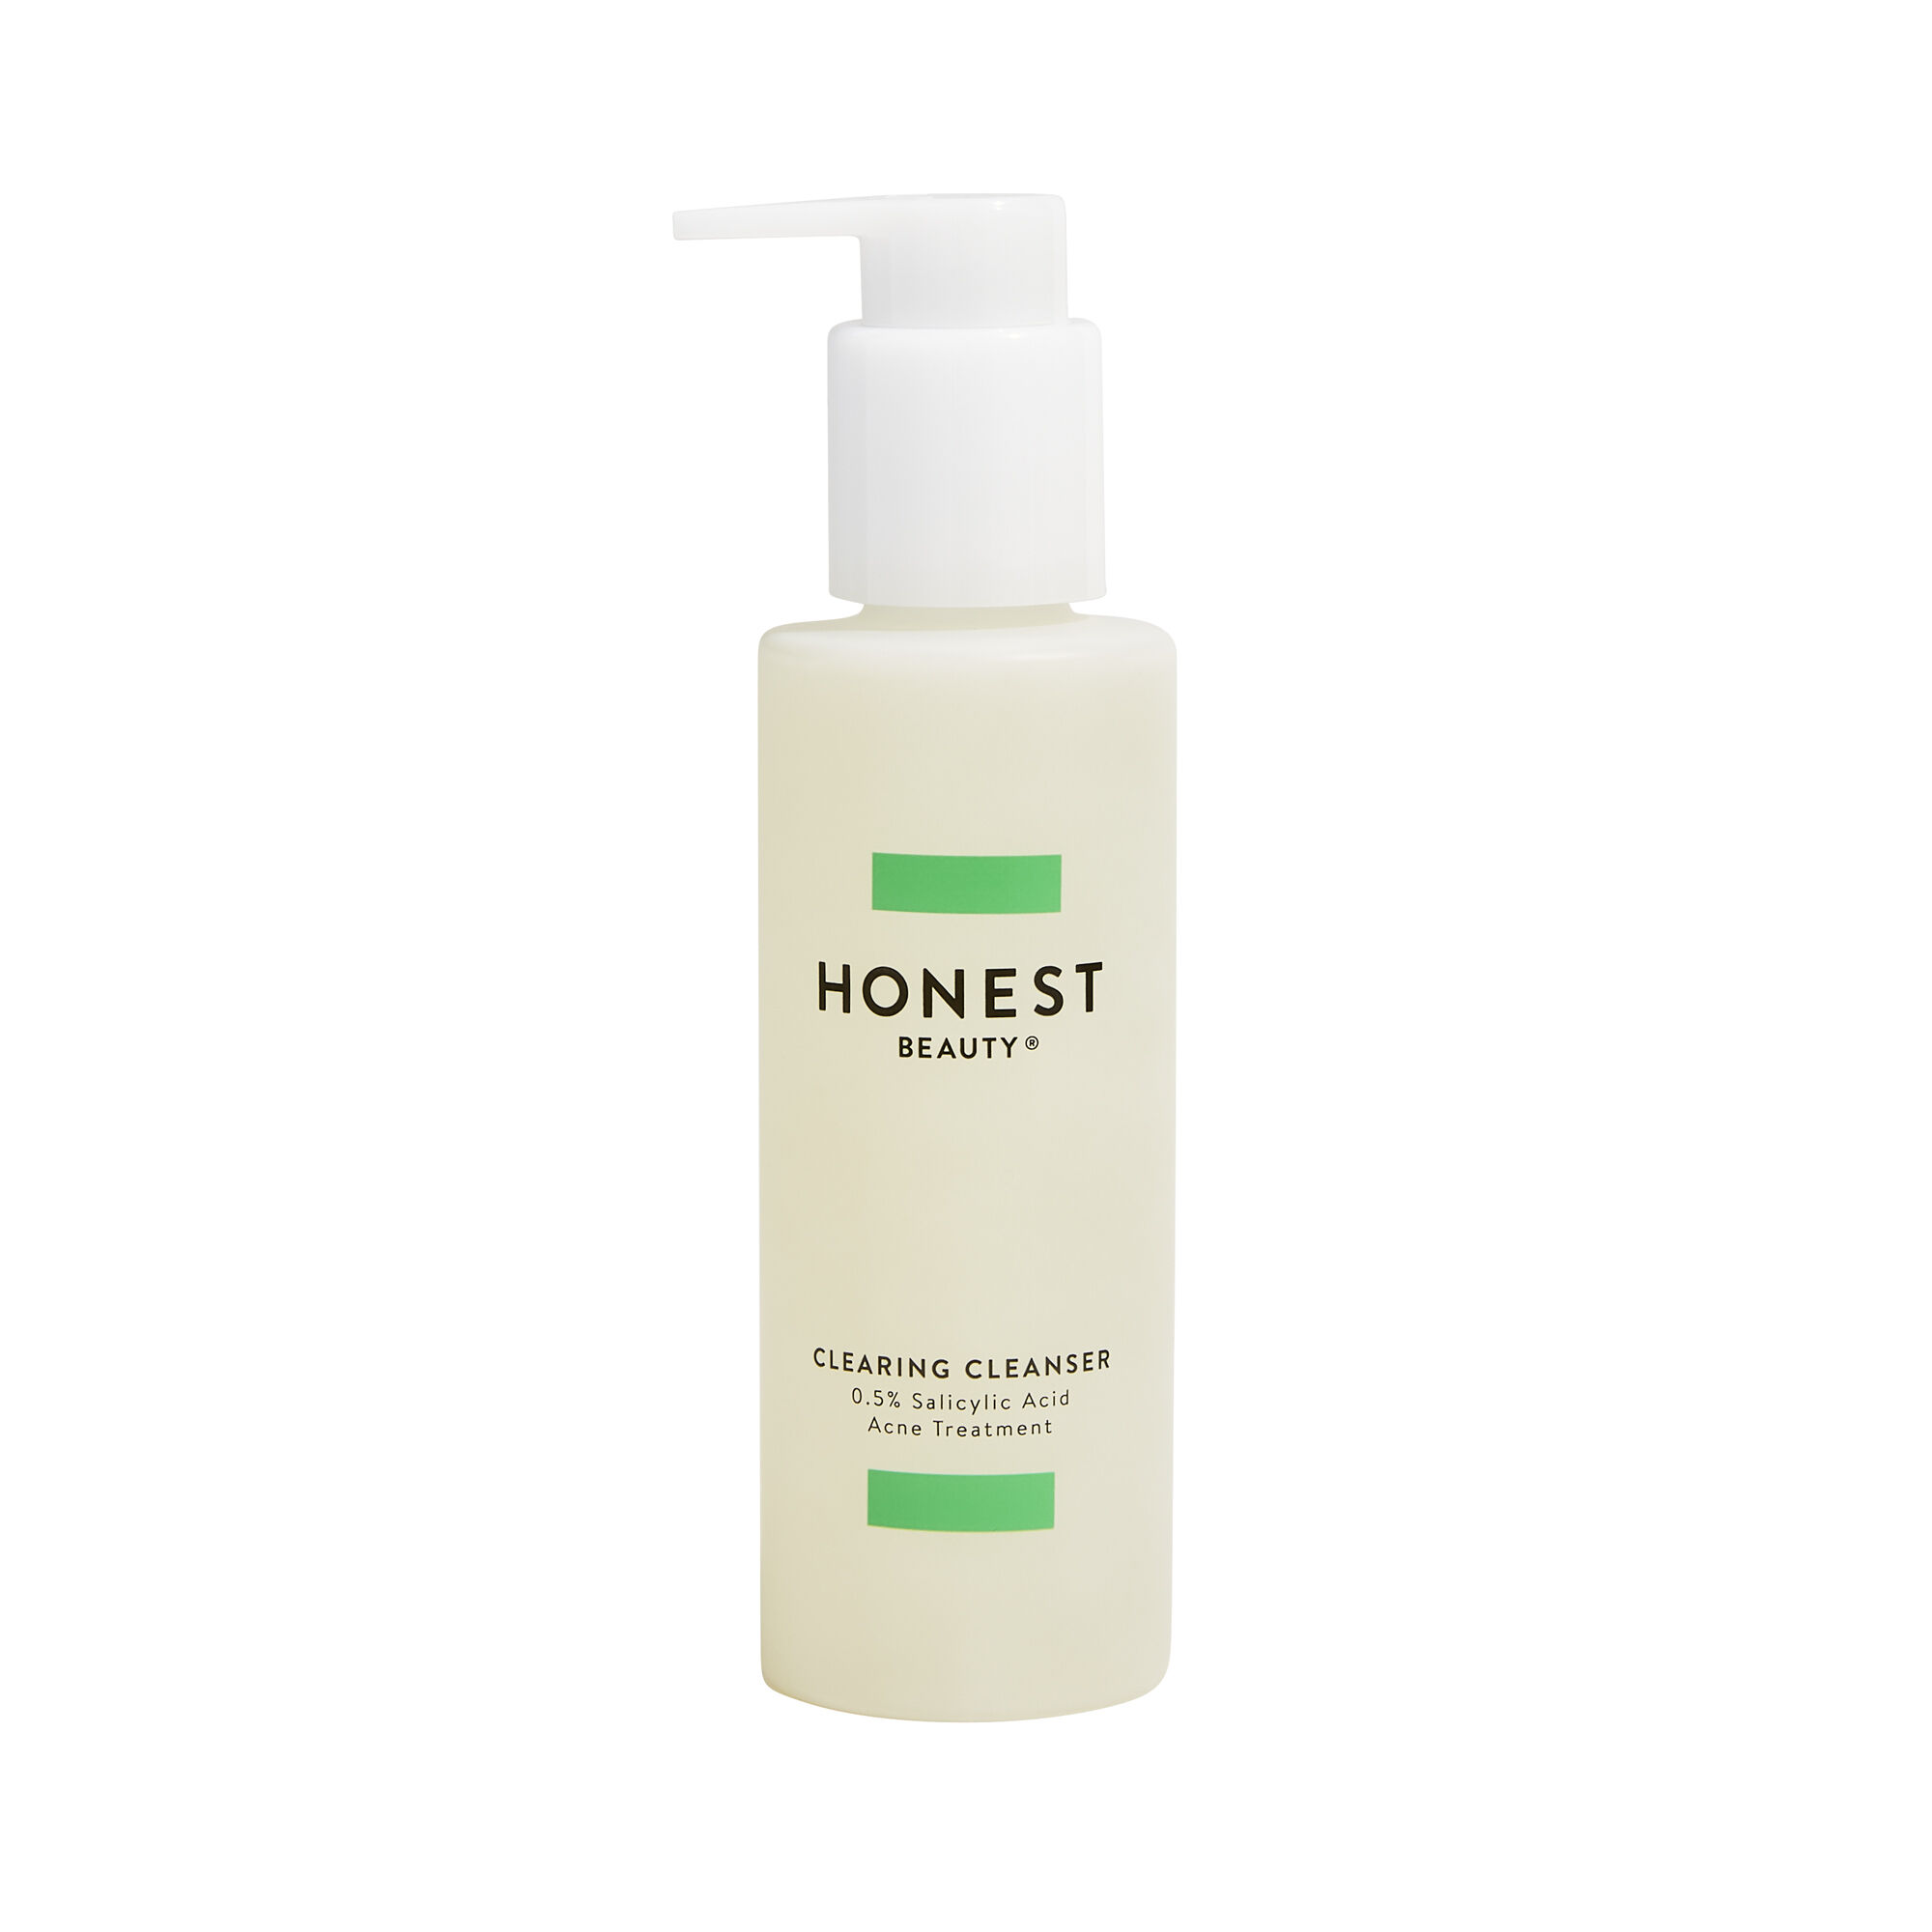 Clearing Cleanser